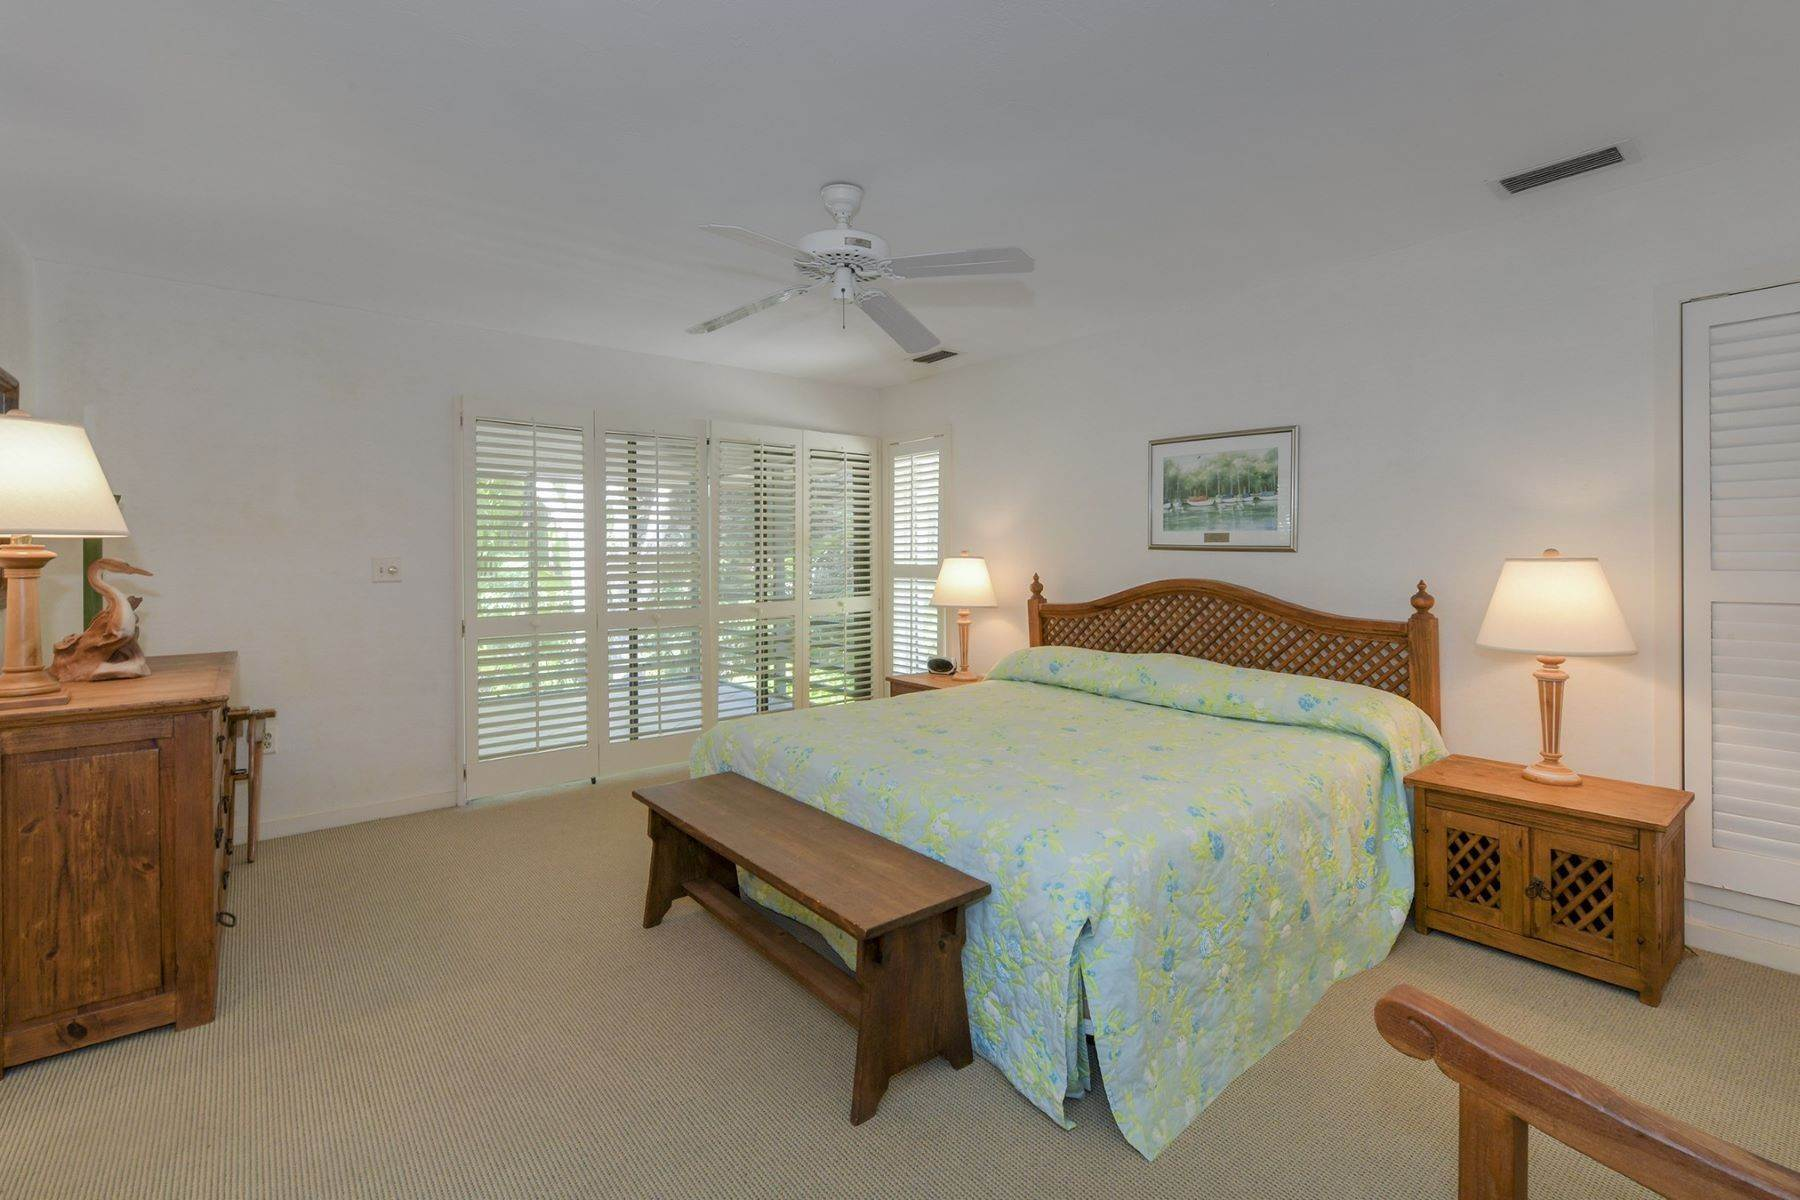 27. Property for Sale at 10 Cannon Point, Key Largo, FL Key Largo, Florida 33037 United States